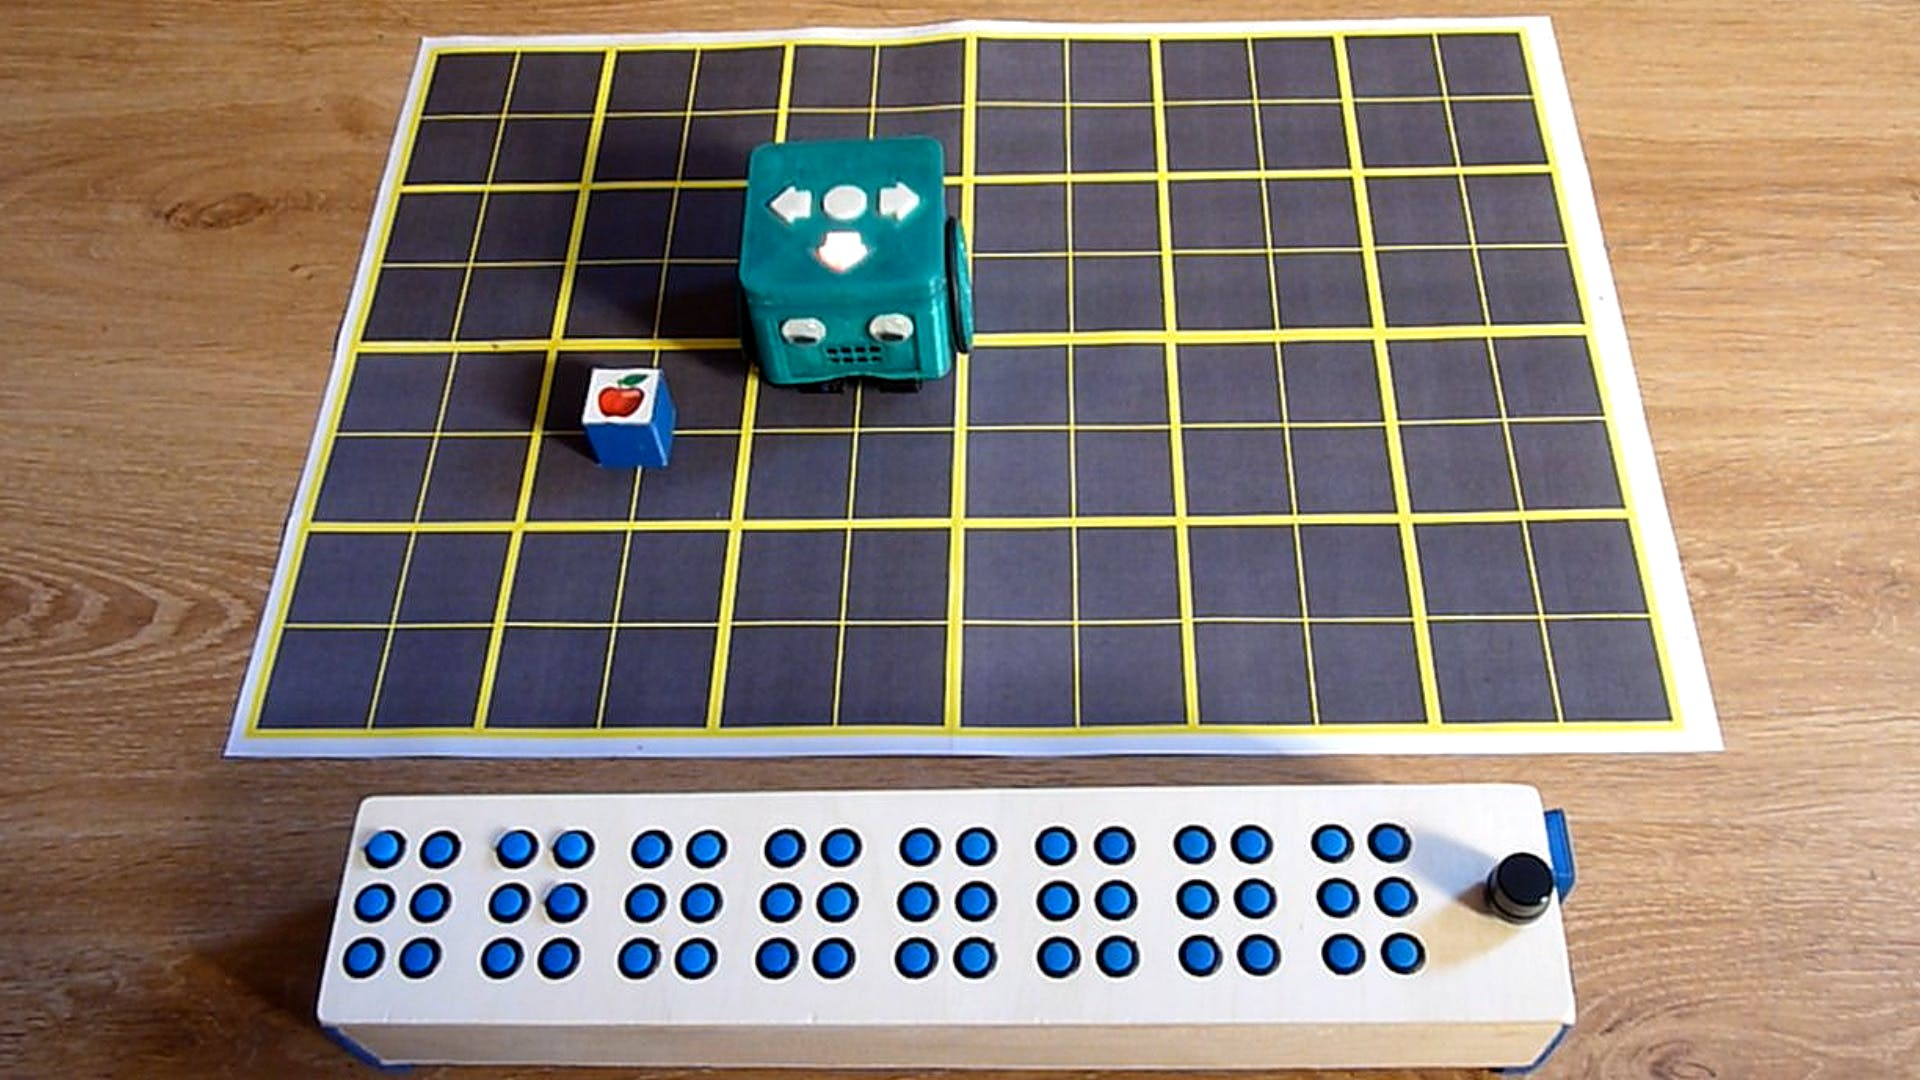 BraiBox (Educational Braille Keyboard & Control Interface)